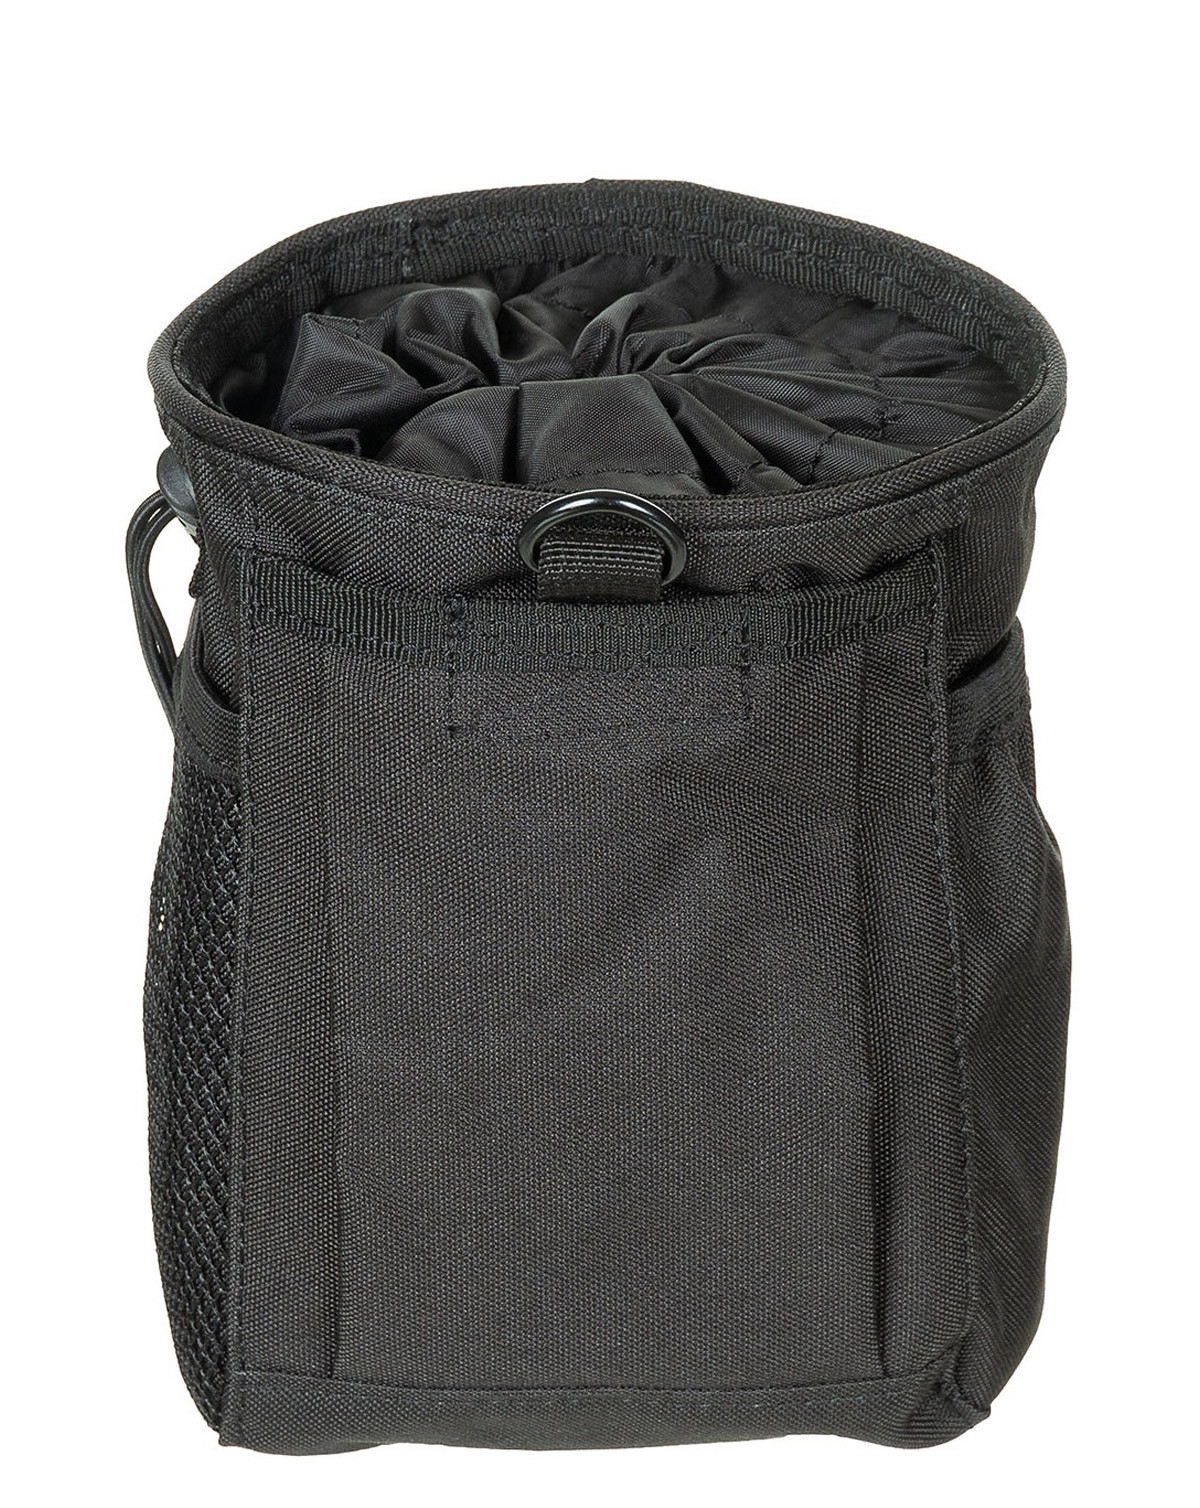 Image of   MFH Dump Pouch (Sort, One Size)